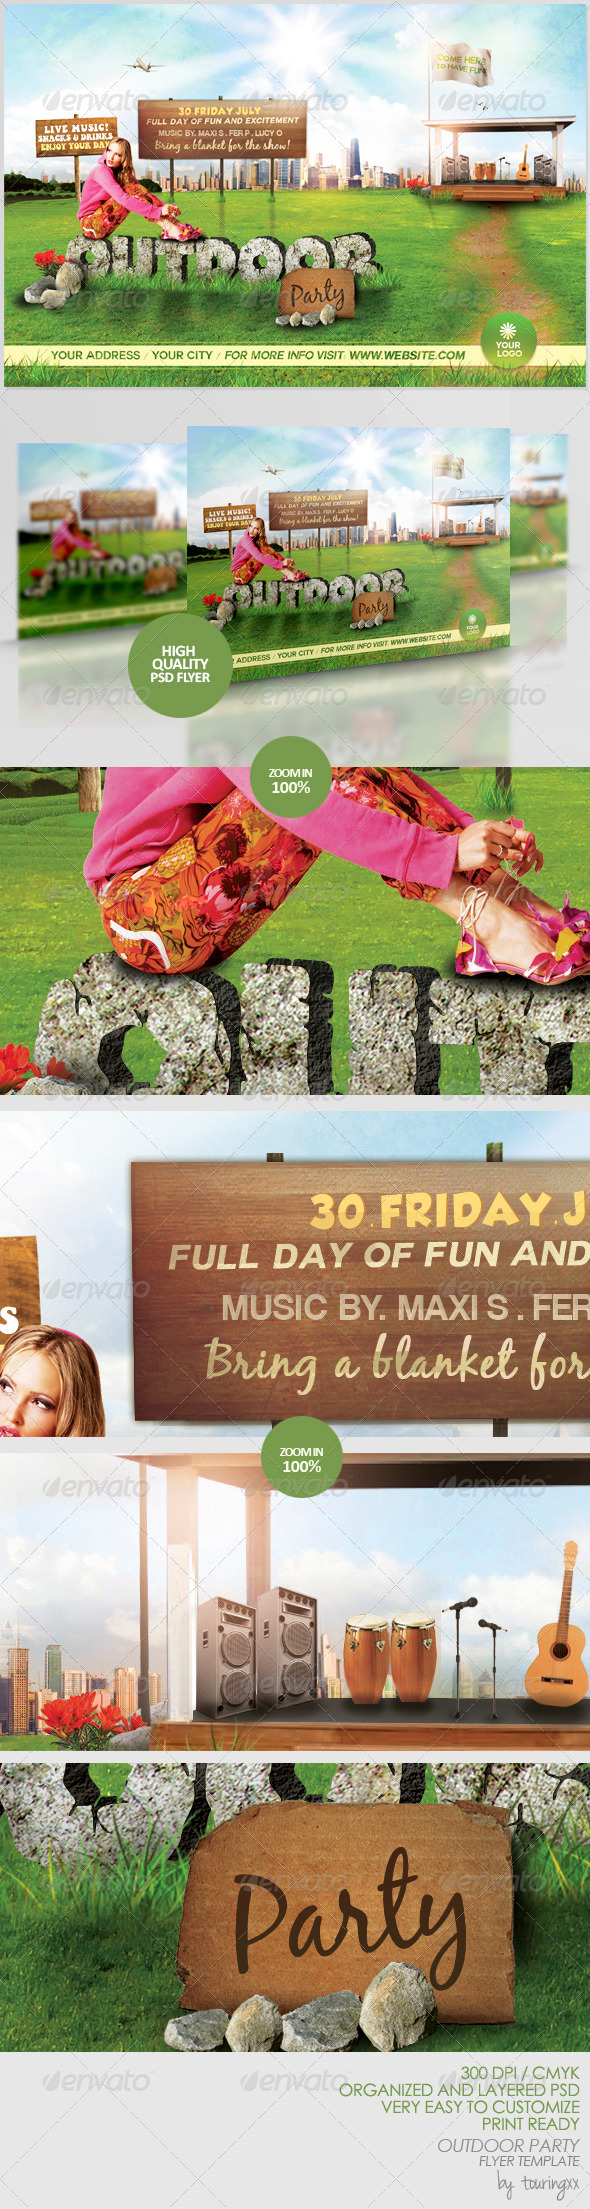 Outdoor Party Flyer Template - Print Templates